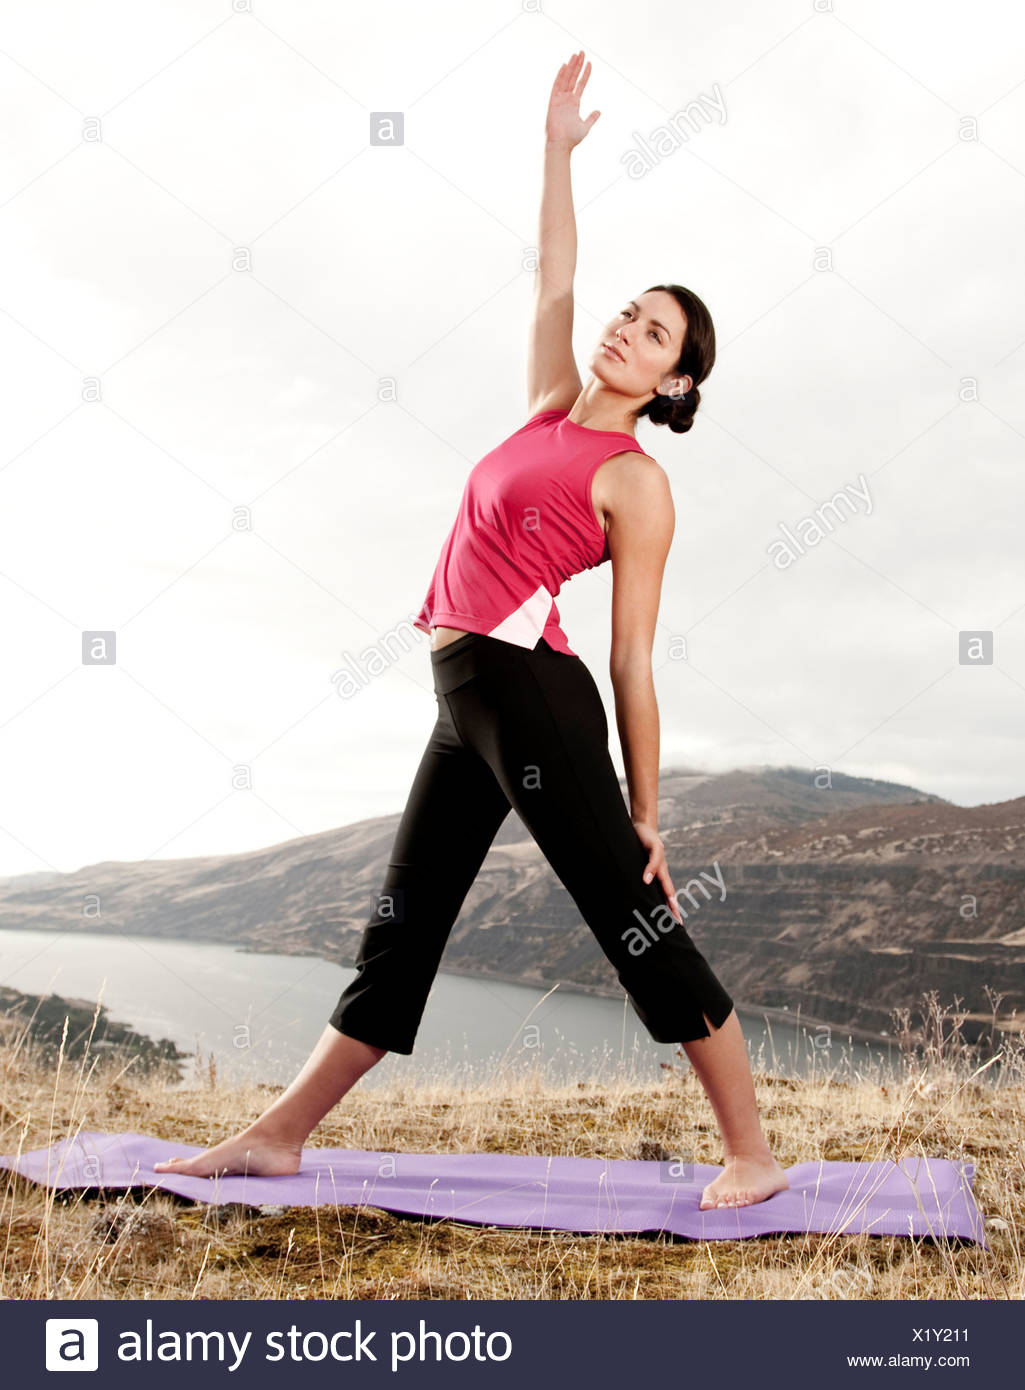 A female practicing yoga in the outdoors with the Columbia River Gorge in the distance. Stock Photo